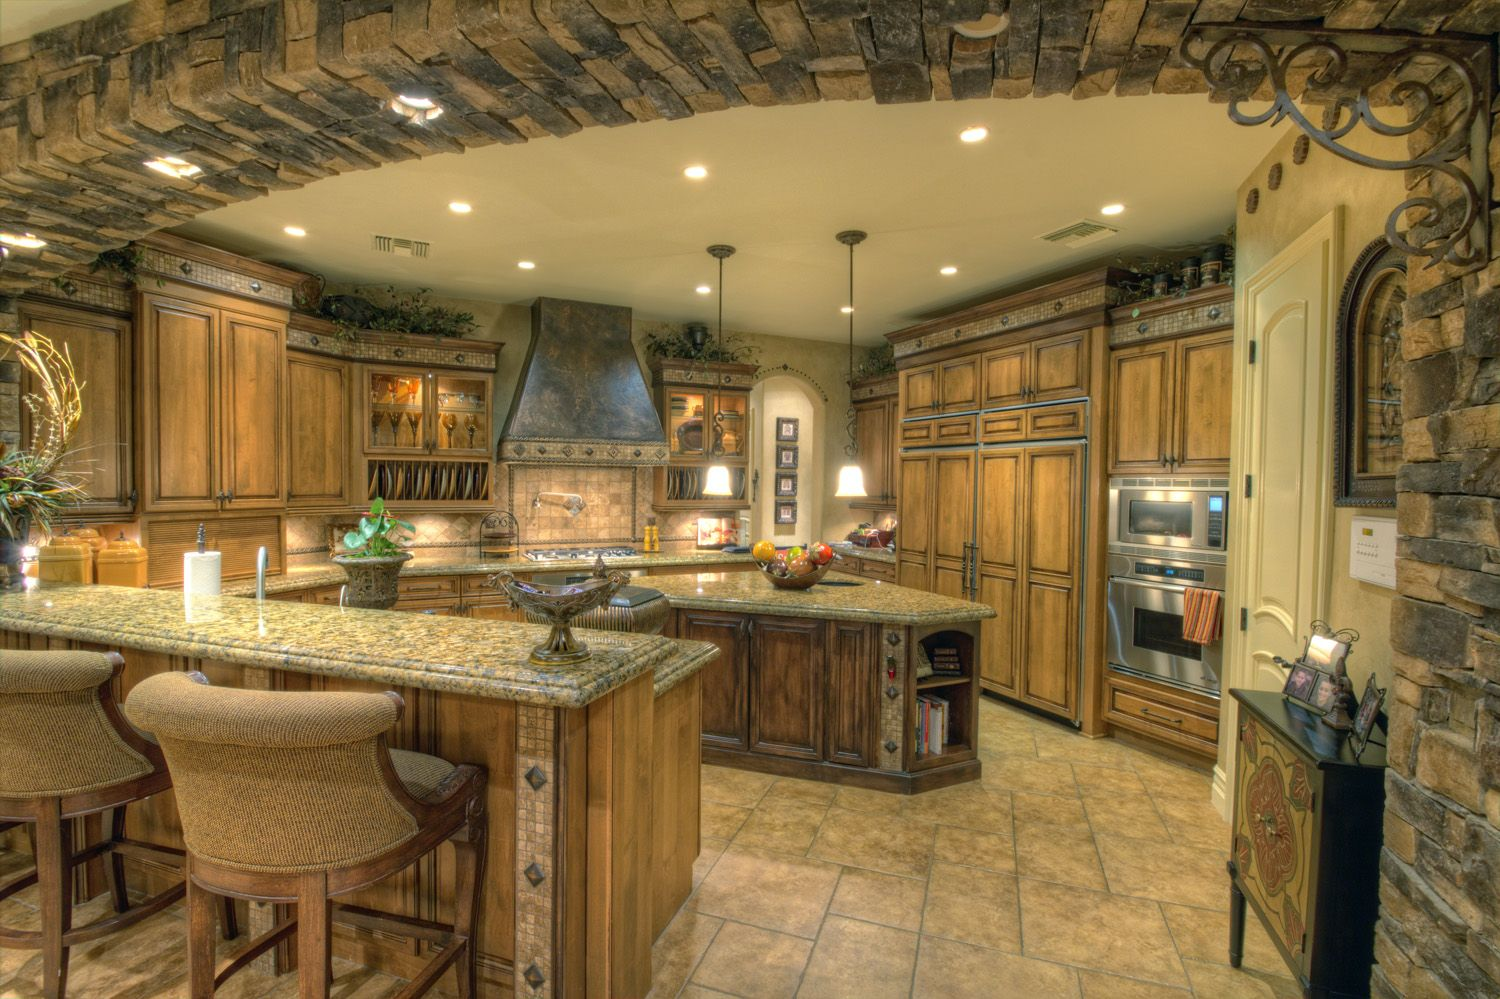 Luxury kitchens luxury estate designer for Extravagant kitchen designs